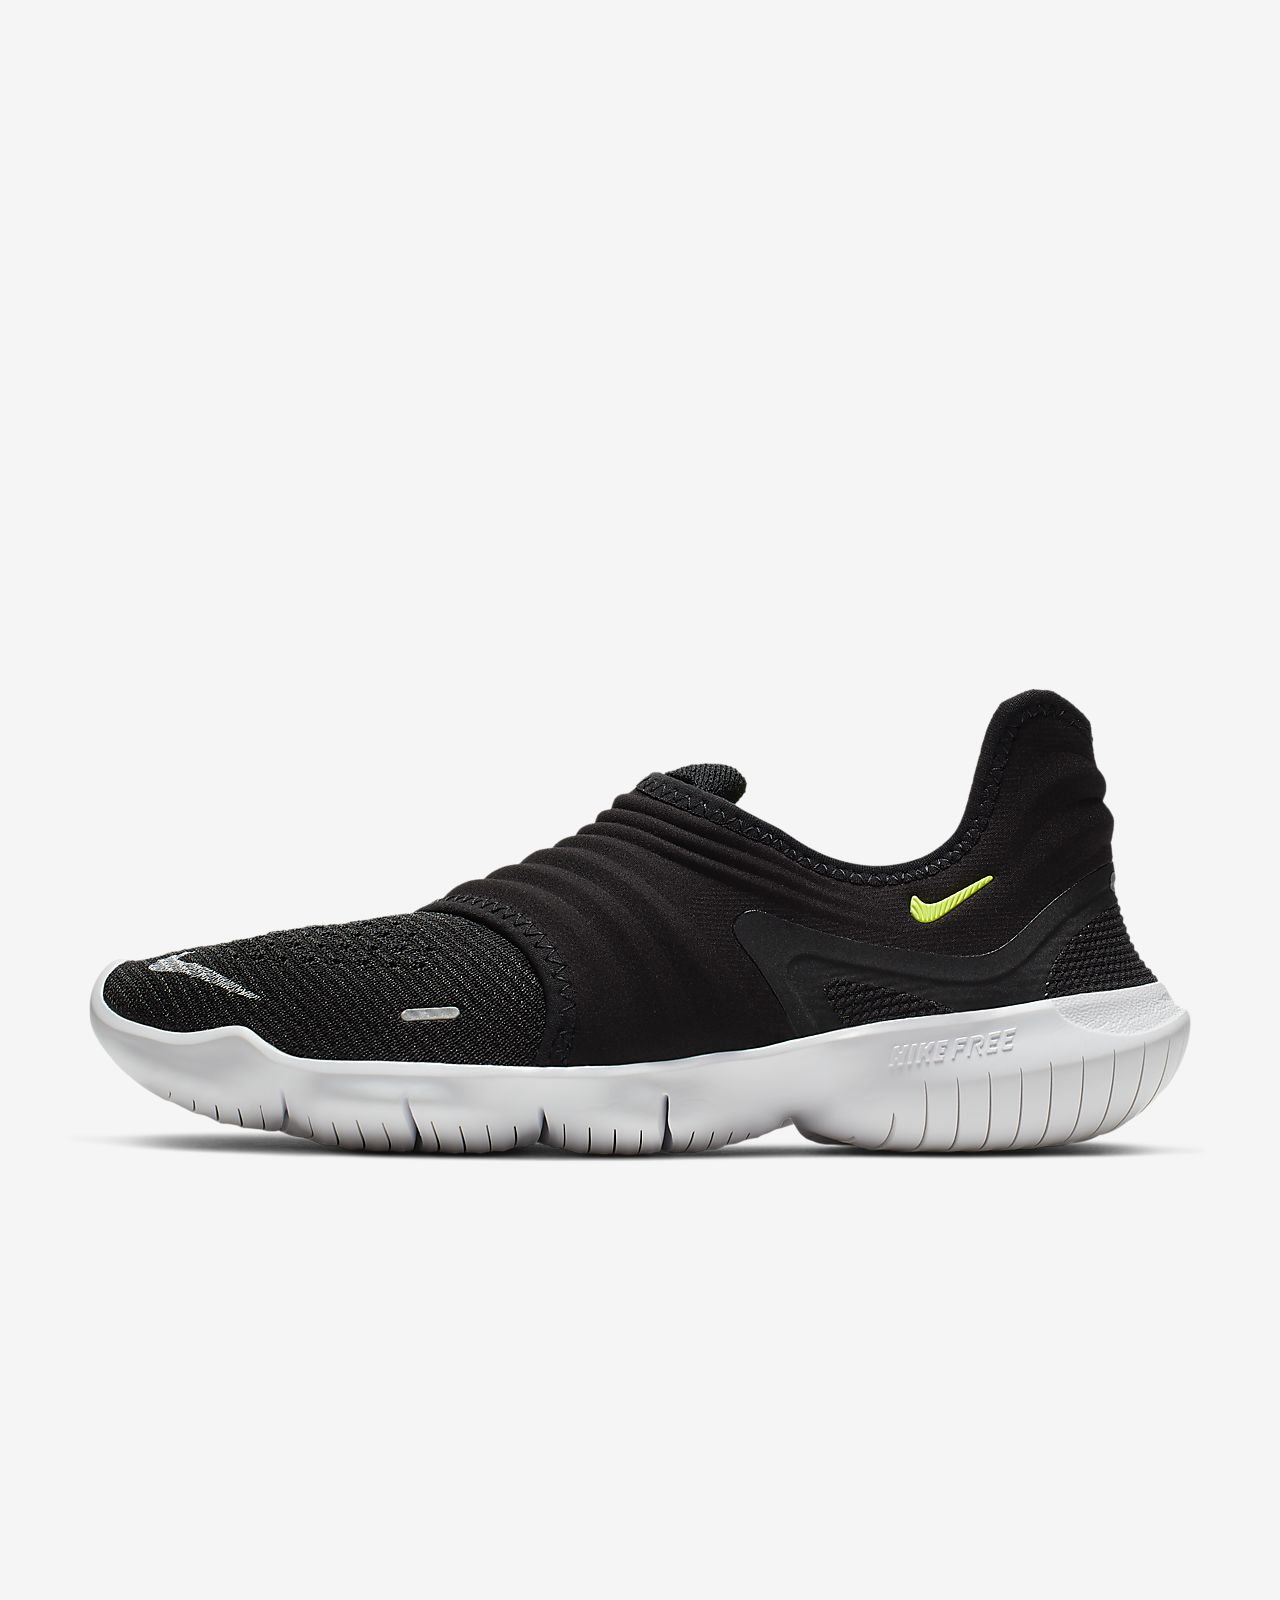 the best attitude c836a 6c7a7 ... Chaussure de running Nike Free RN Flyknit 3.0 pour Femme